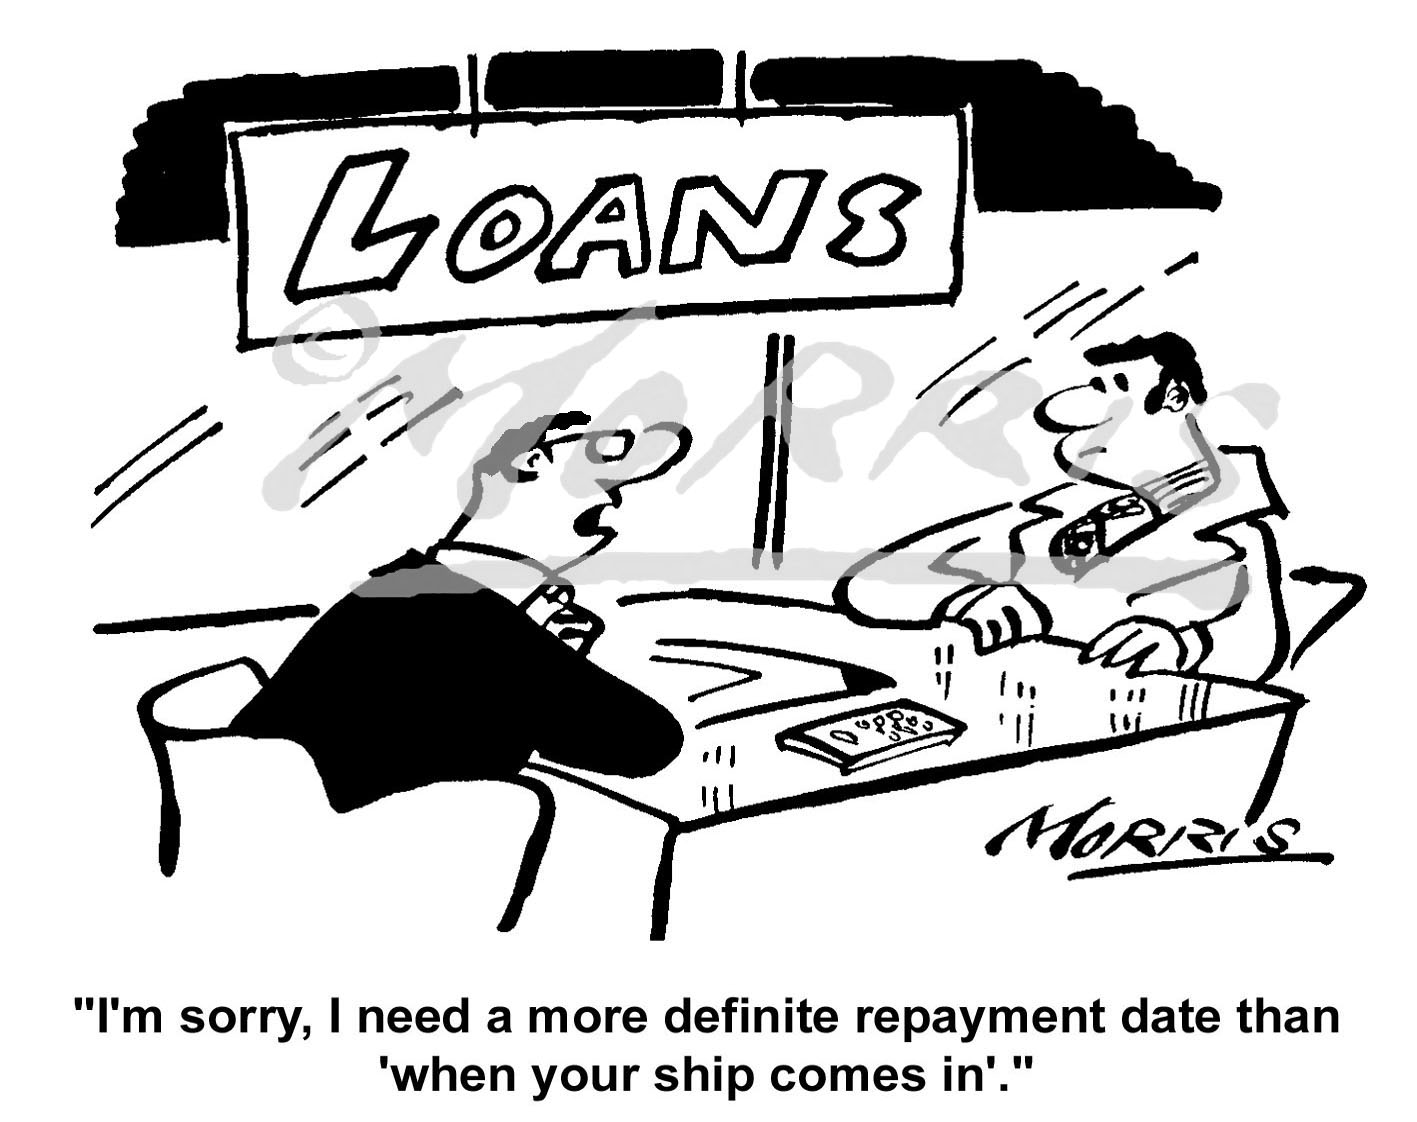 Bank loan cartoon Ref: 1433bw